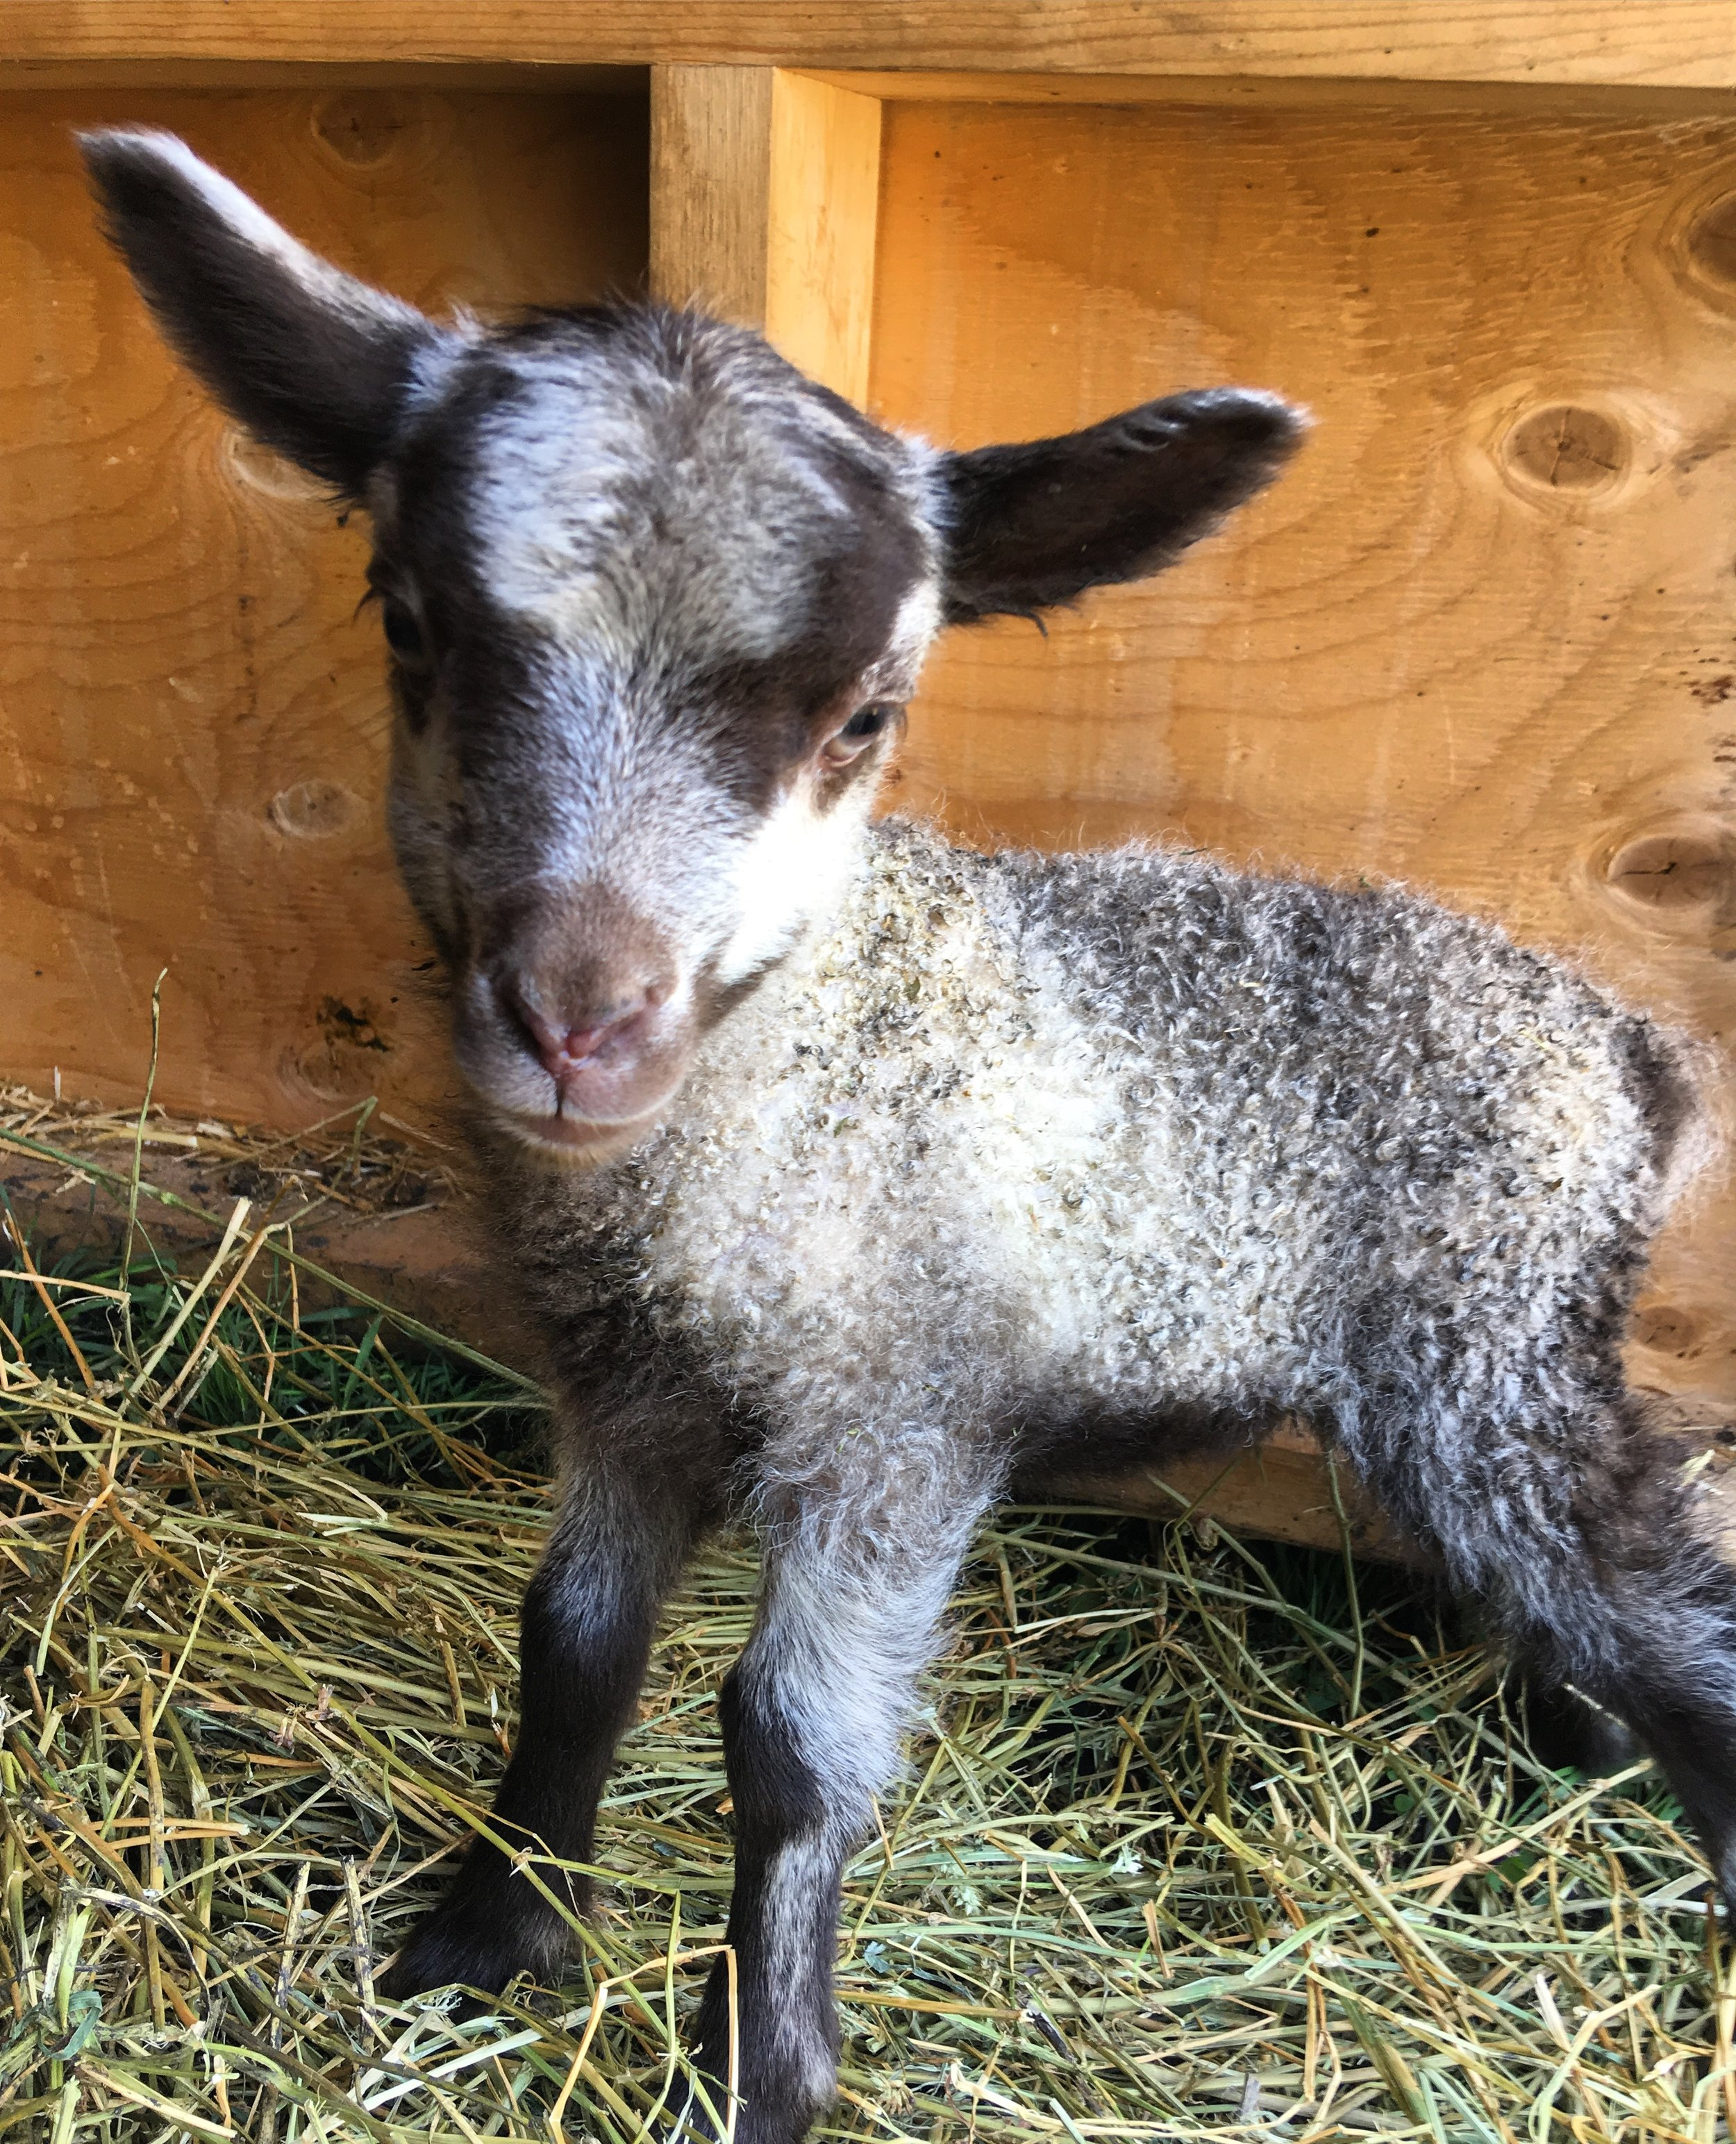 This ewe lamb was born on May 24, 2018 weighing 2.15kg. Her mother is Bryn and the sire is Muddy, both are purebred shetland sheep. She has a twin sister, with a darker black/grey face. She was much smaller than her sister when she was born, but she makes up for it in attitude. You can always tell when she is looking for her mama - she might be the loudest lamb we have!